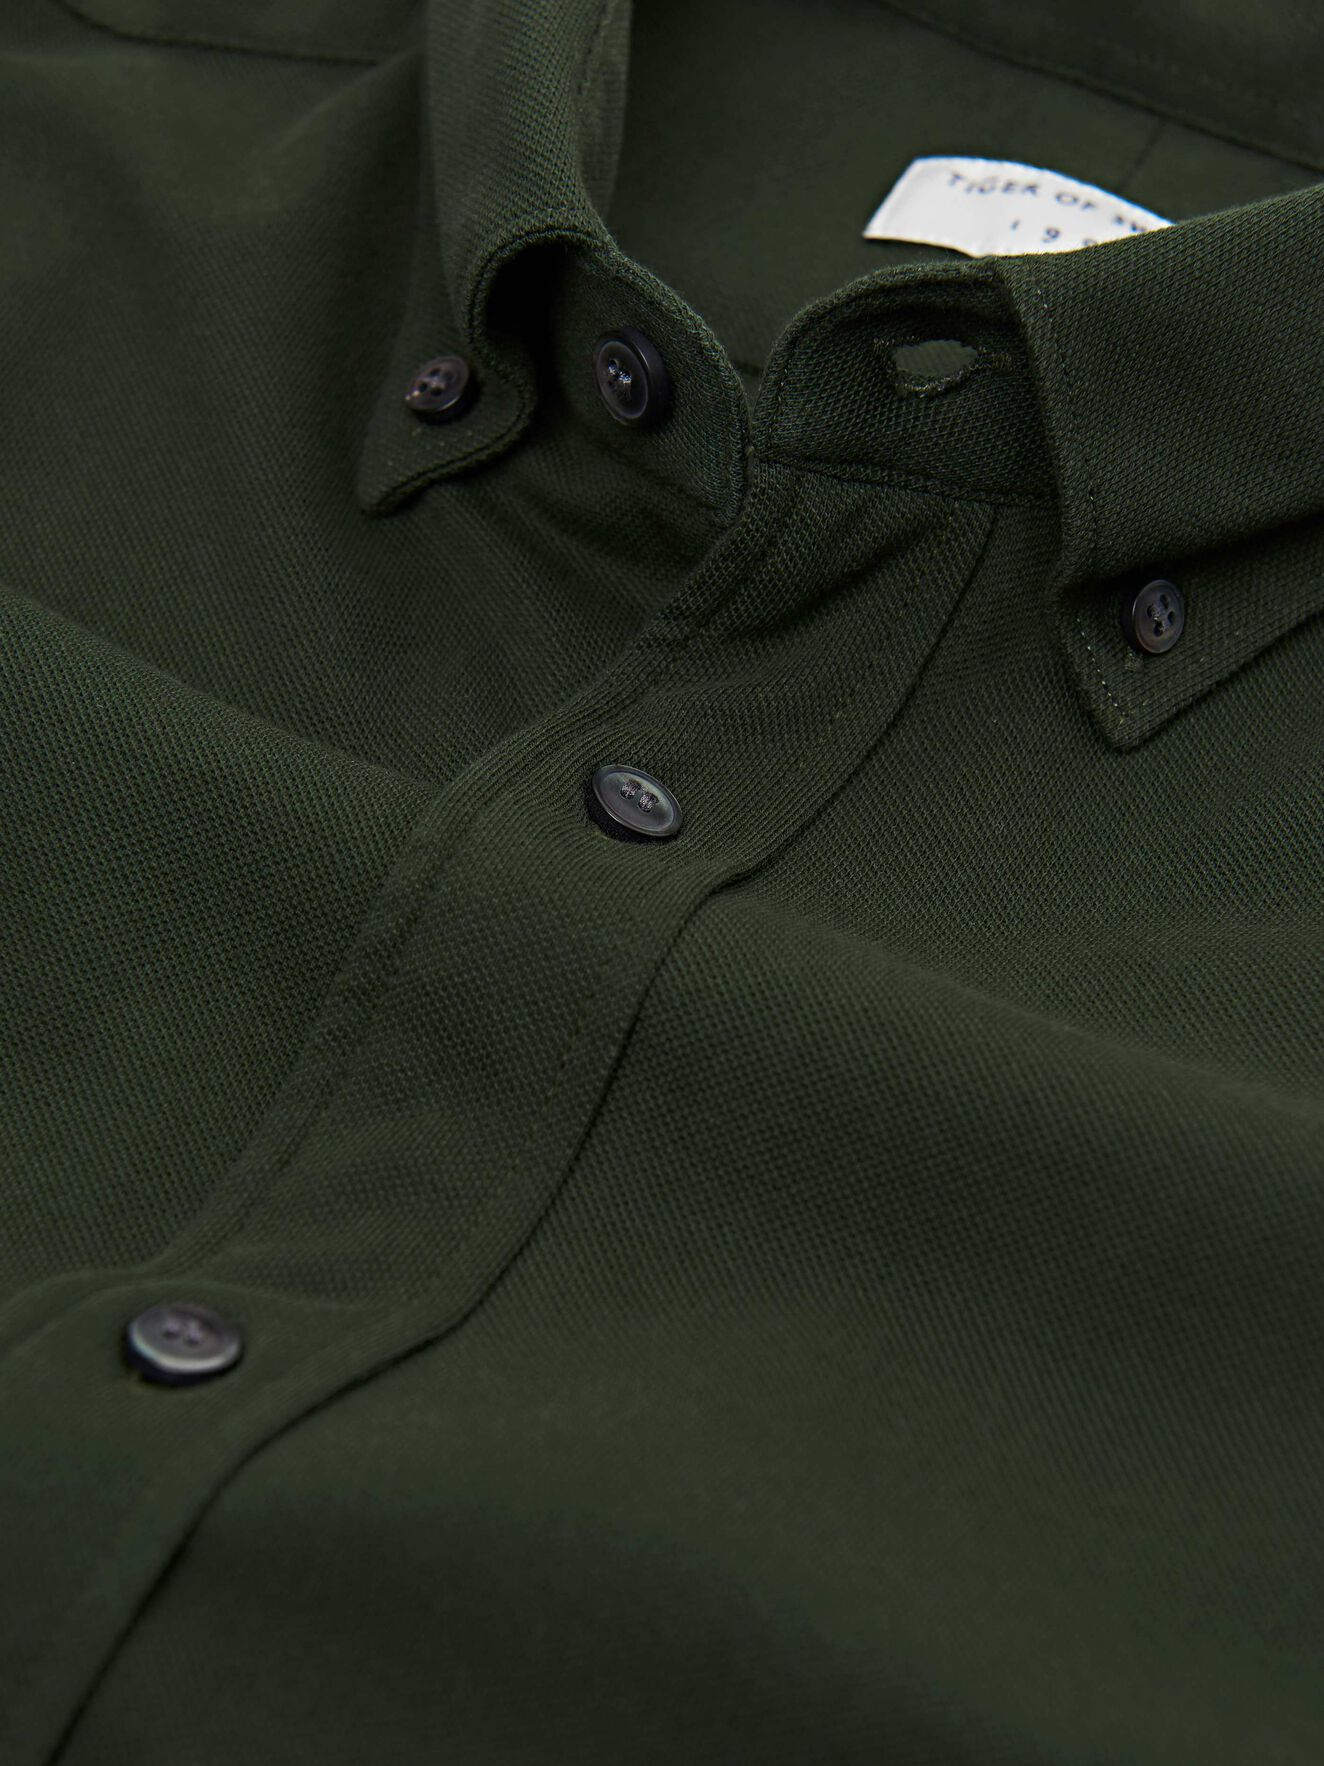 Fenald Shirt in Military Green from Tiger of Sweden